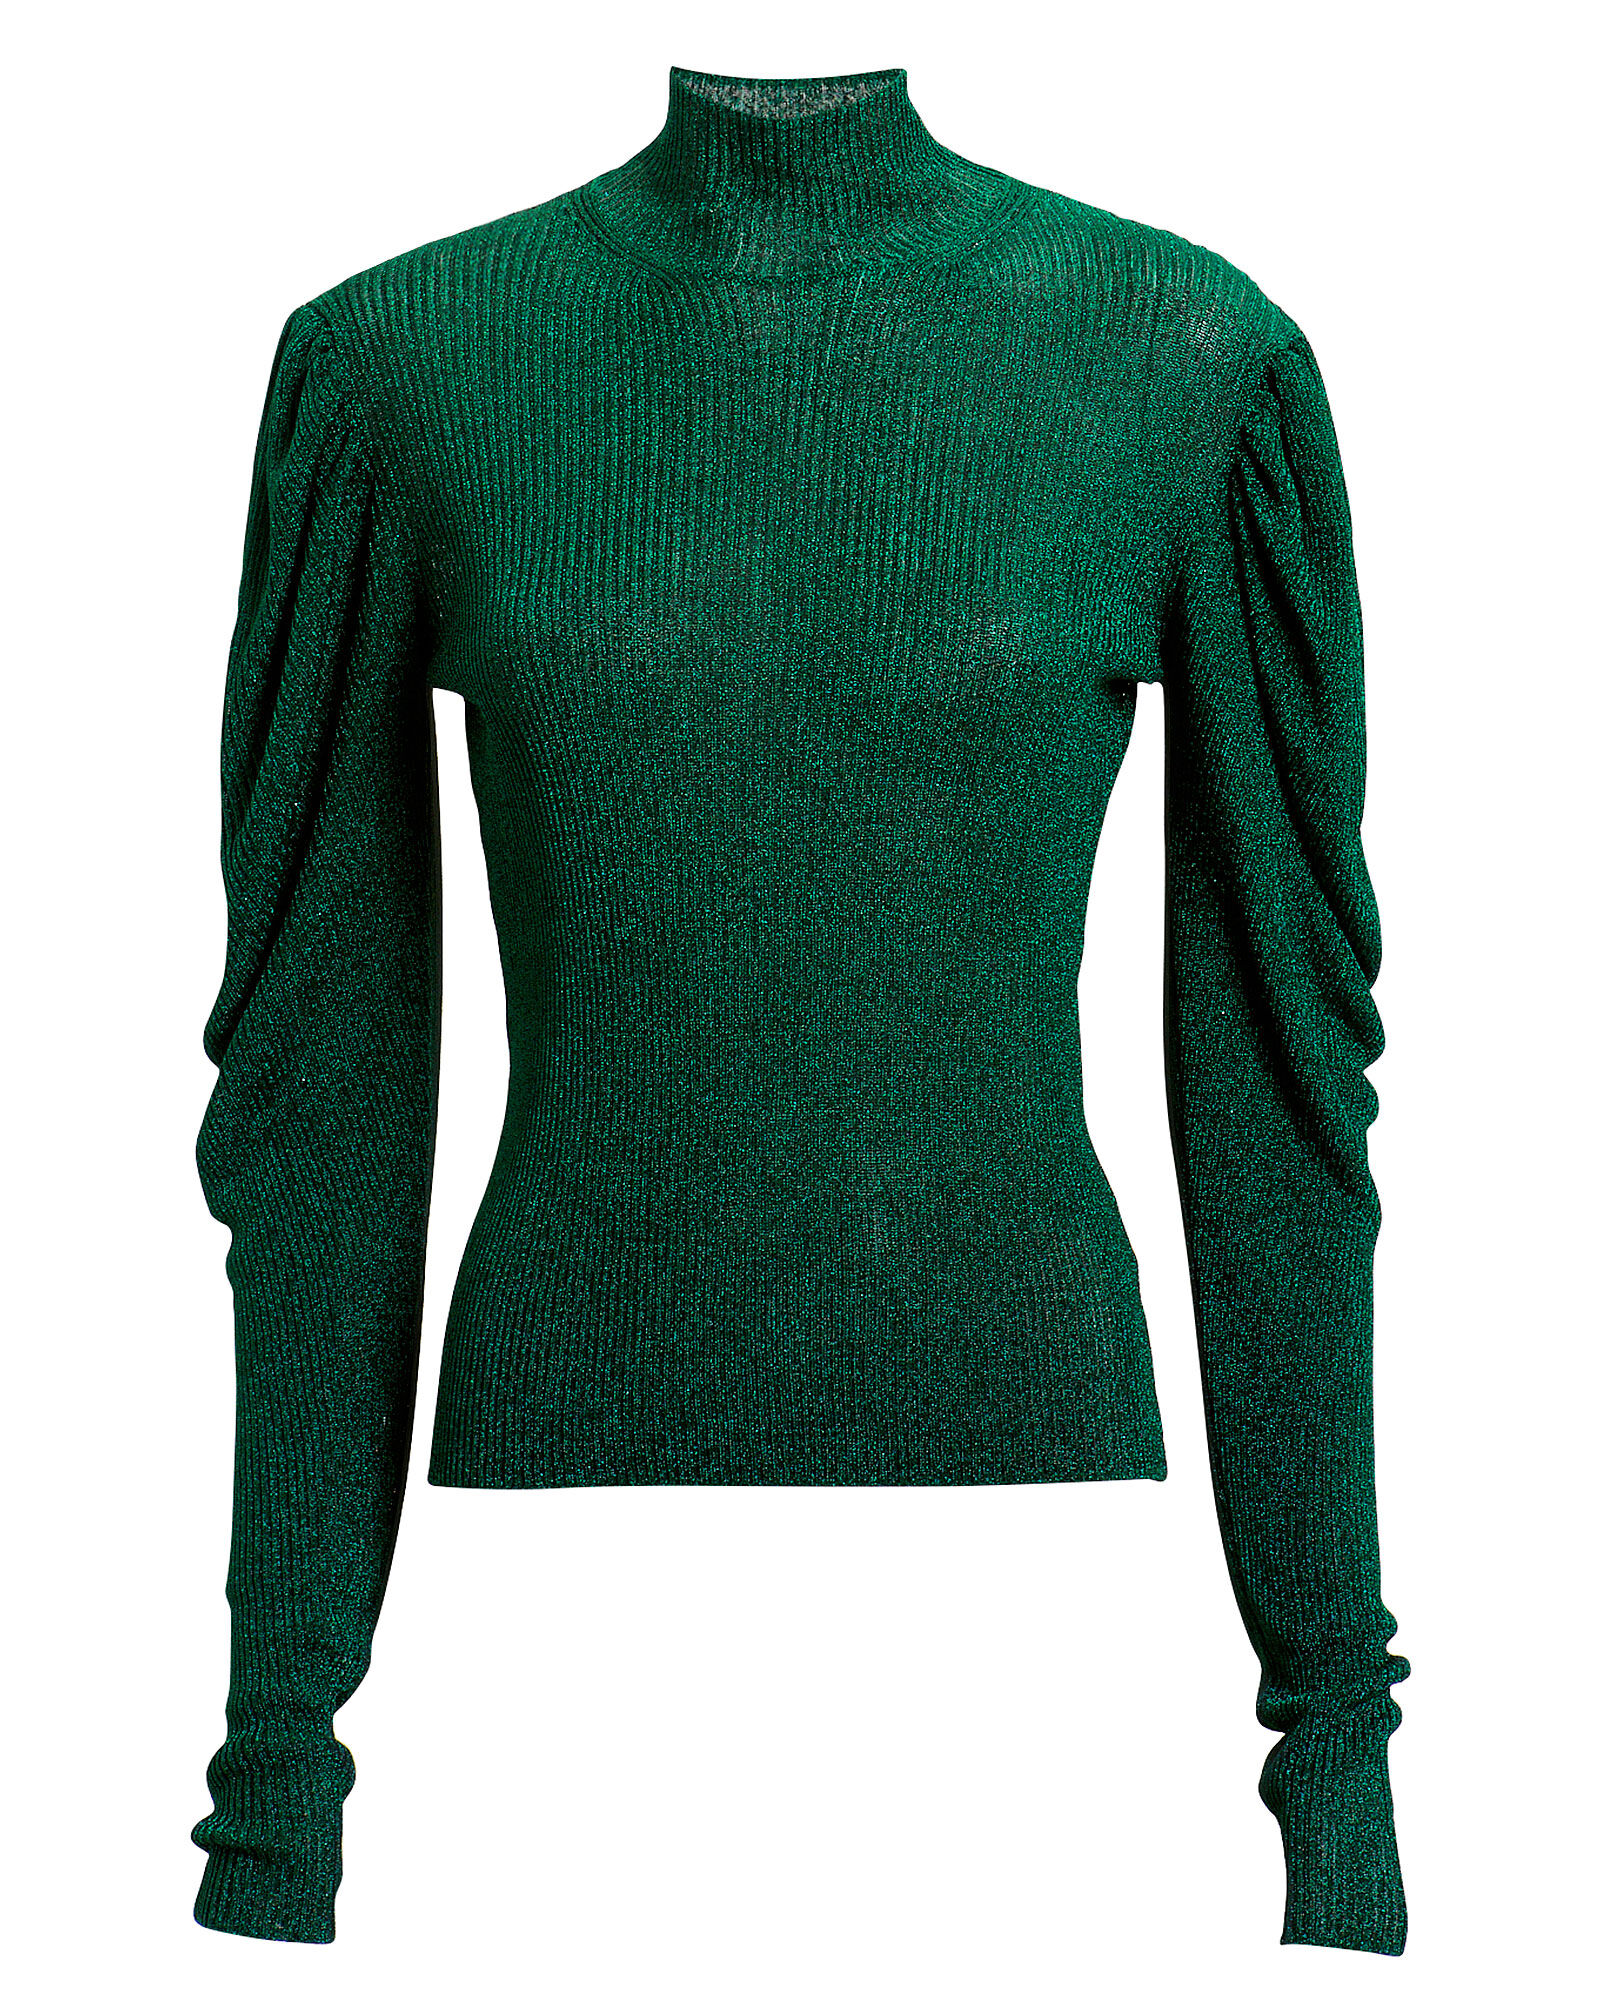 Puff Sleeve Turtleneck Sweater, TURQUOISE, hi-res